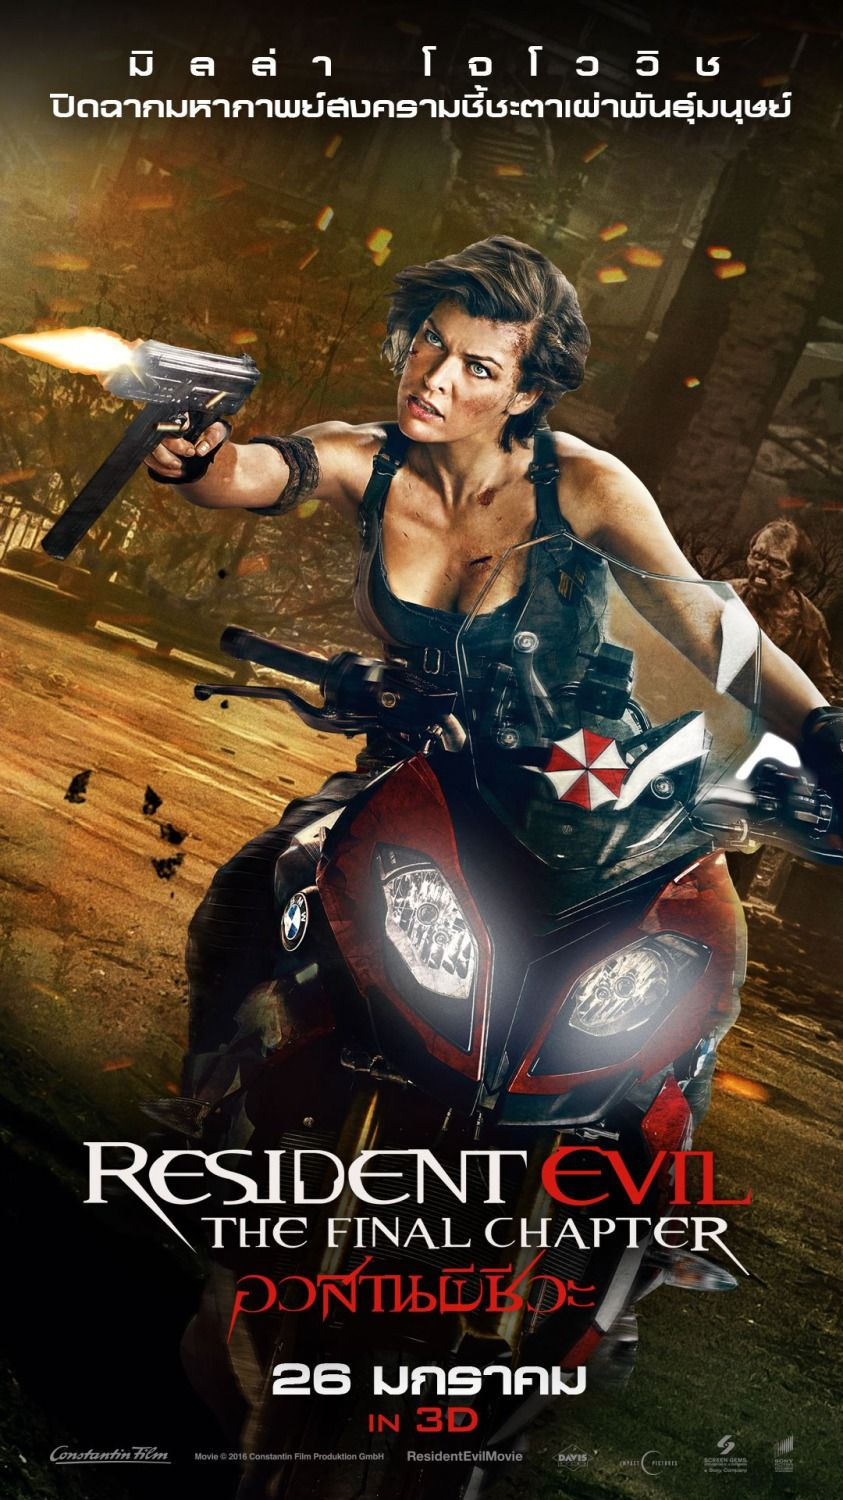 Return To The Main Poster Page For Resident Evil The Final